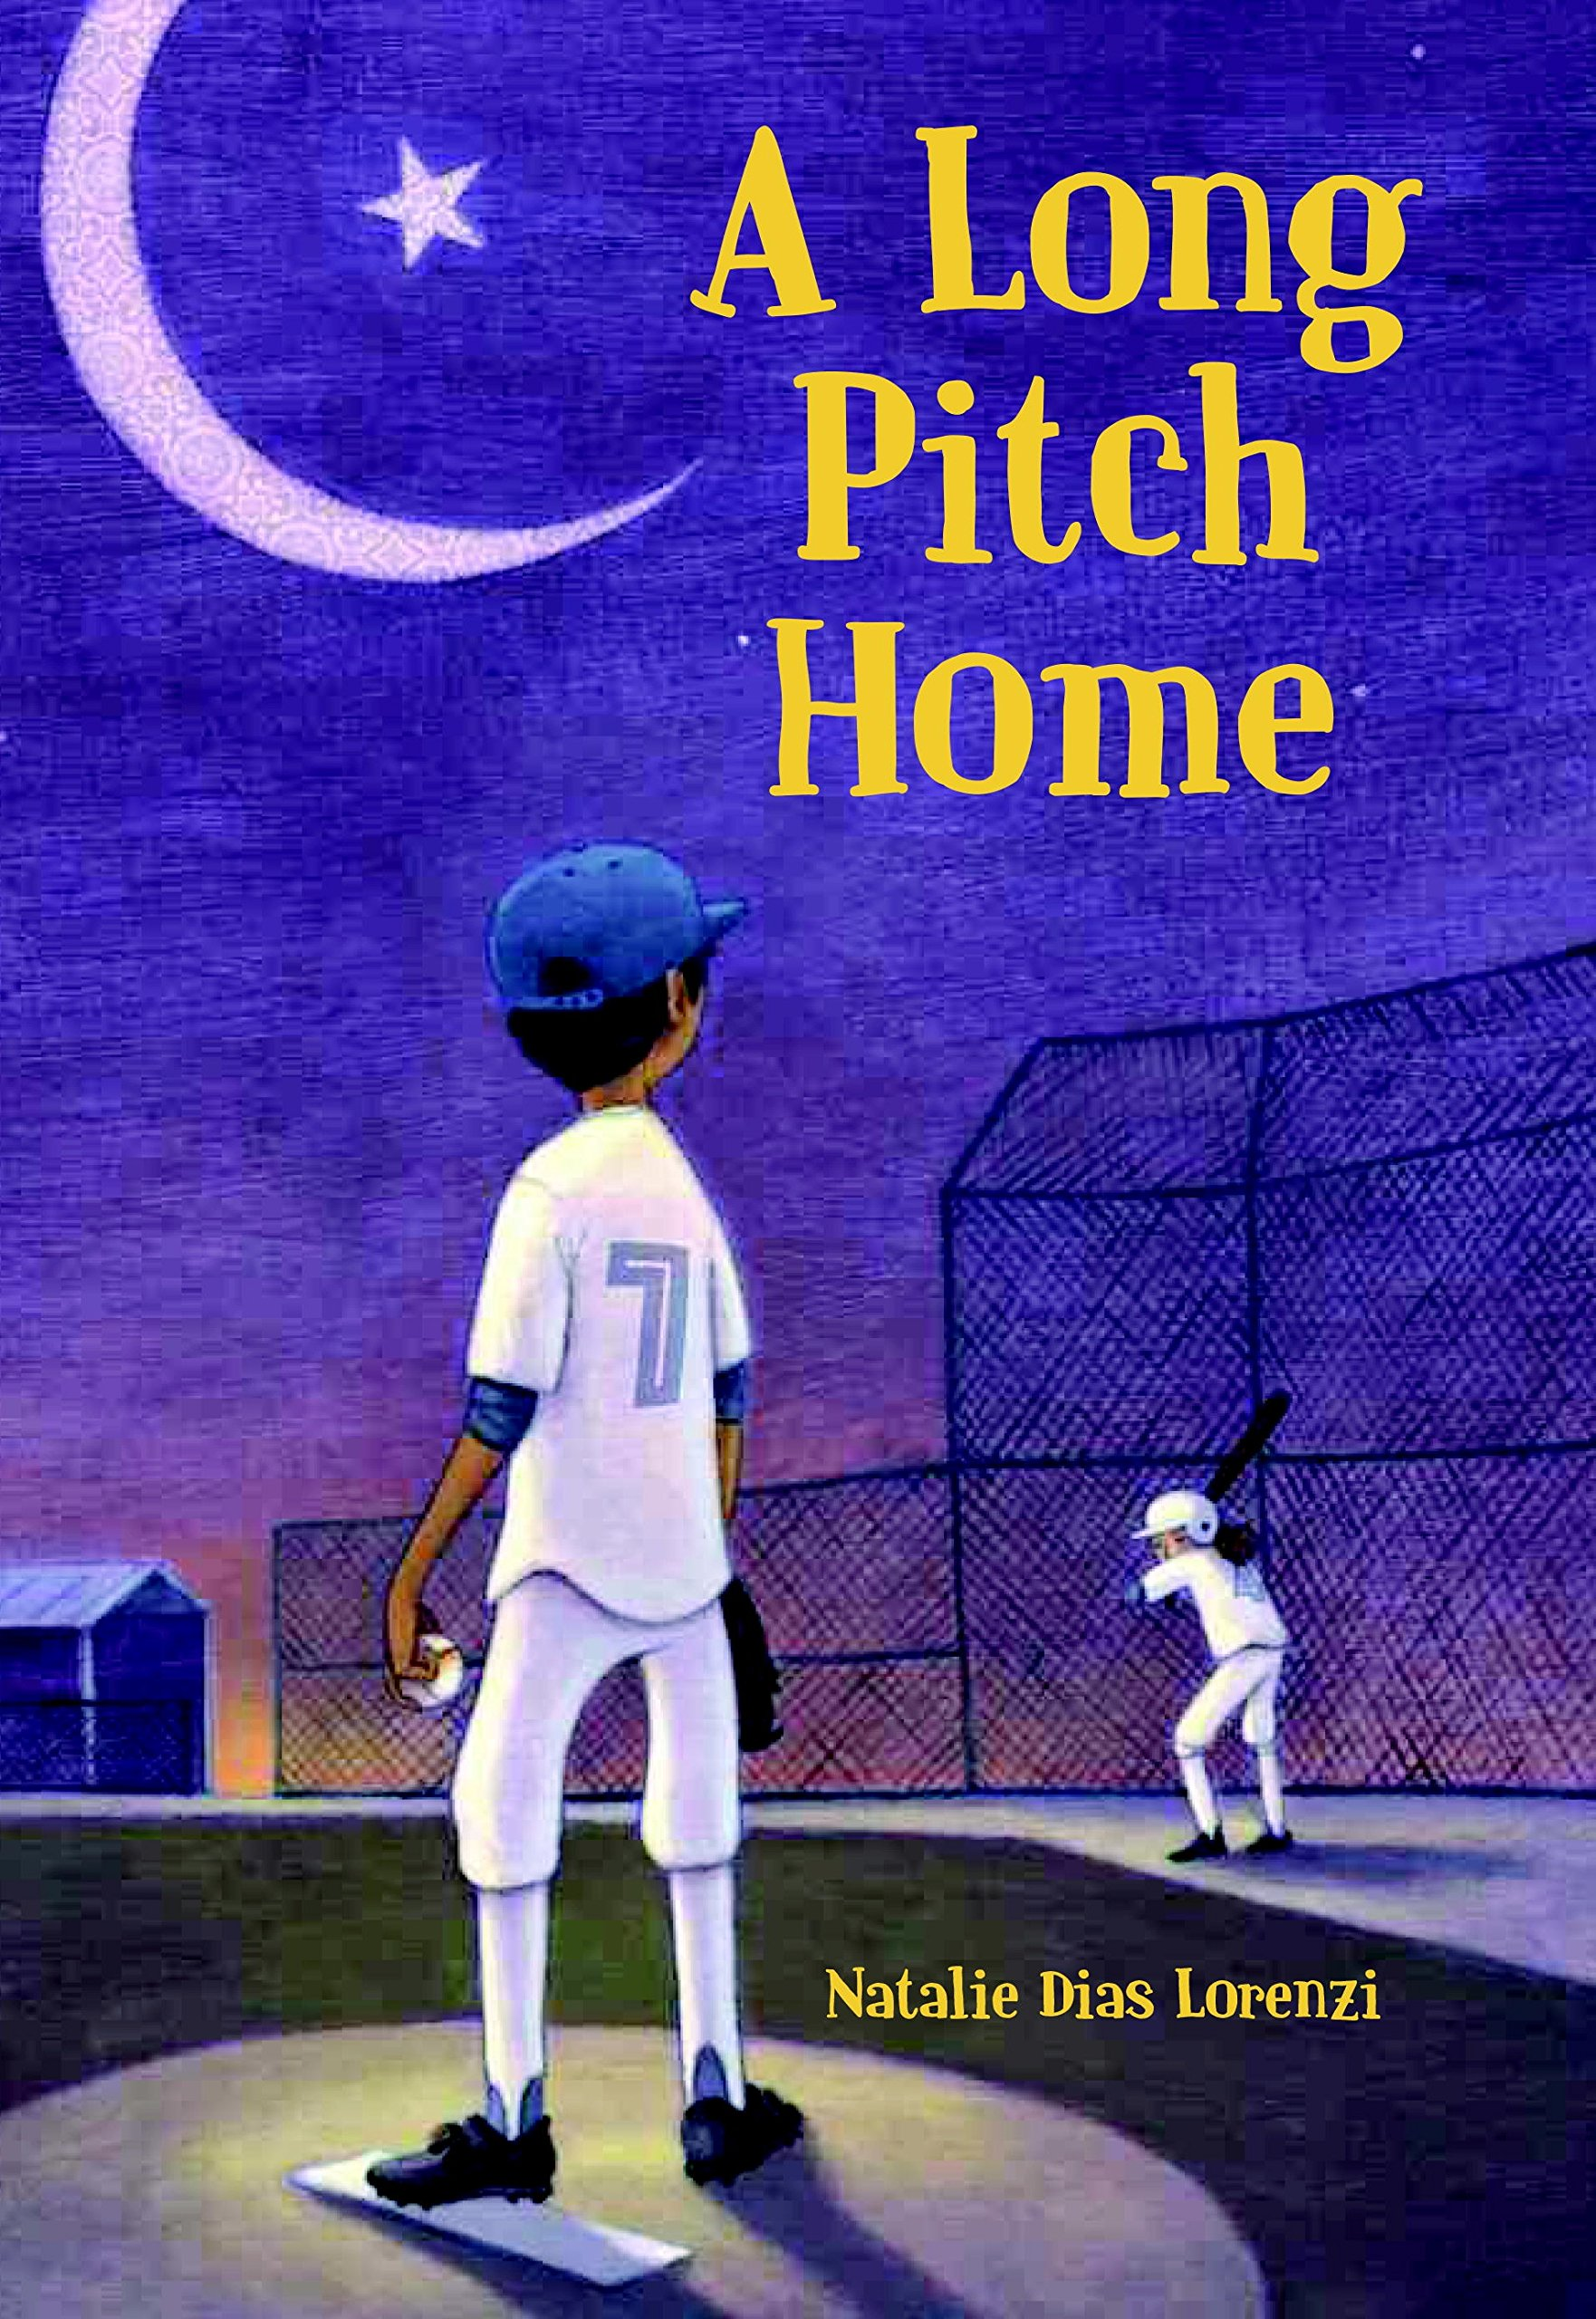 A Long Pitch Home